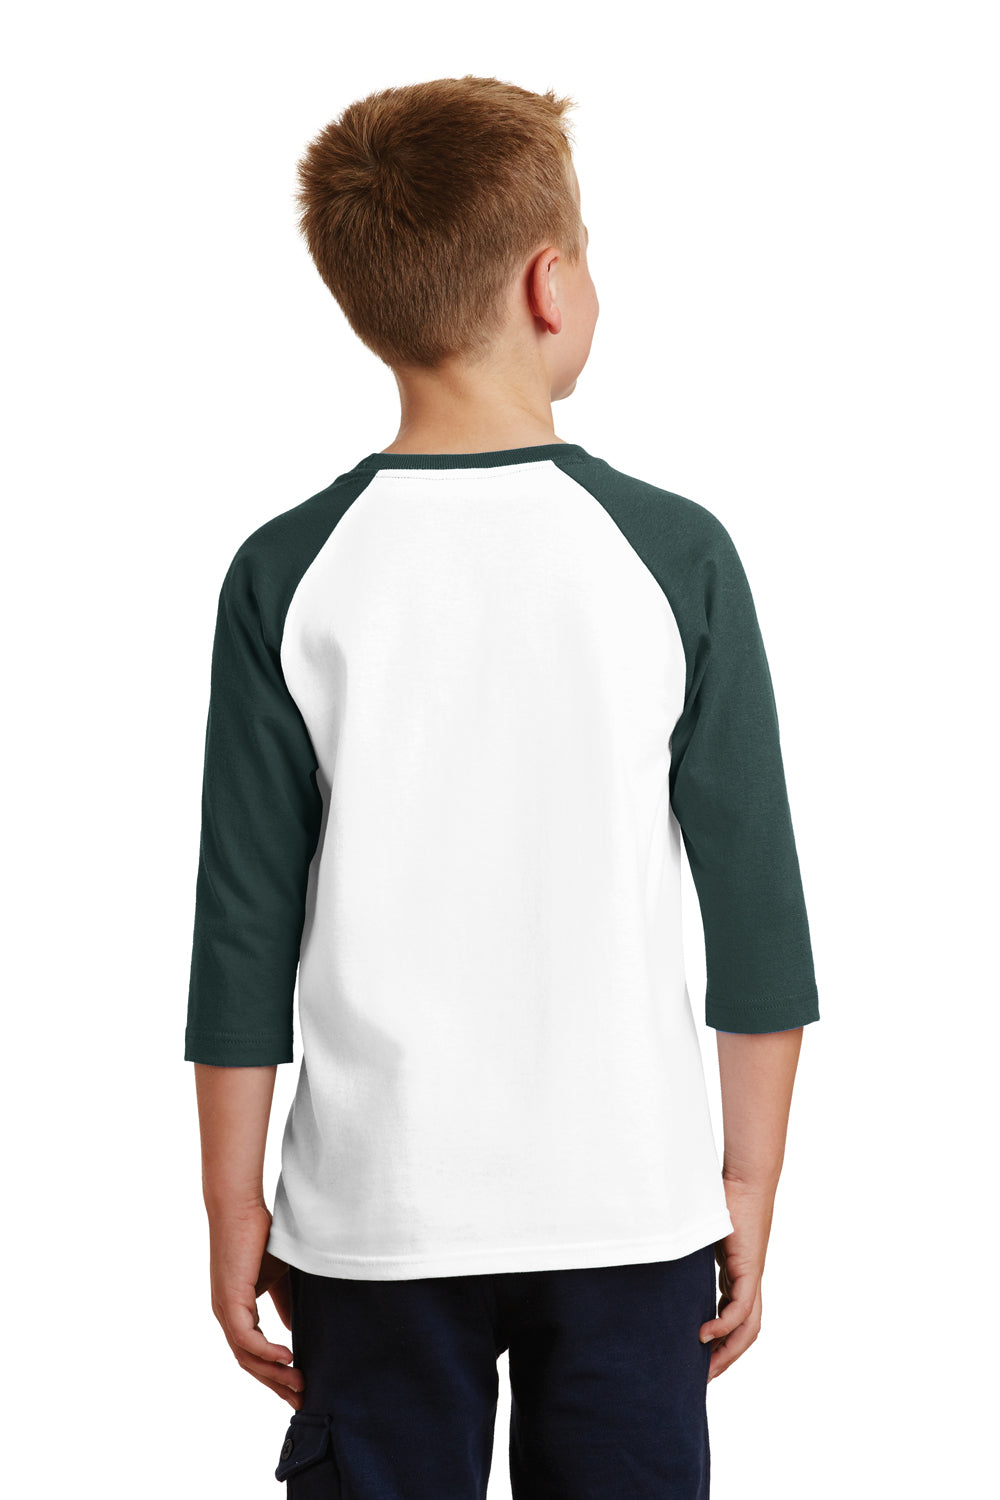 Port & Company PC55YRS Youth Core Moisture Wicking 3/4 Sleeve Crewneck T-Shirt White/Dark Green Back